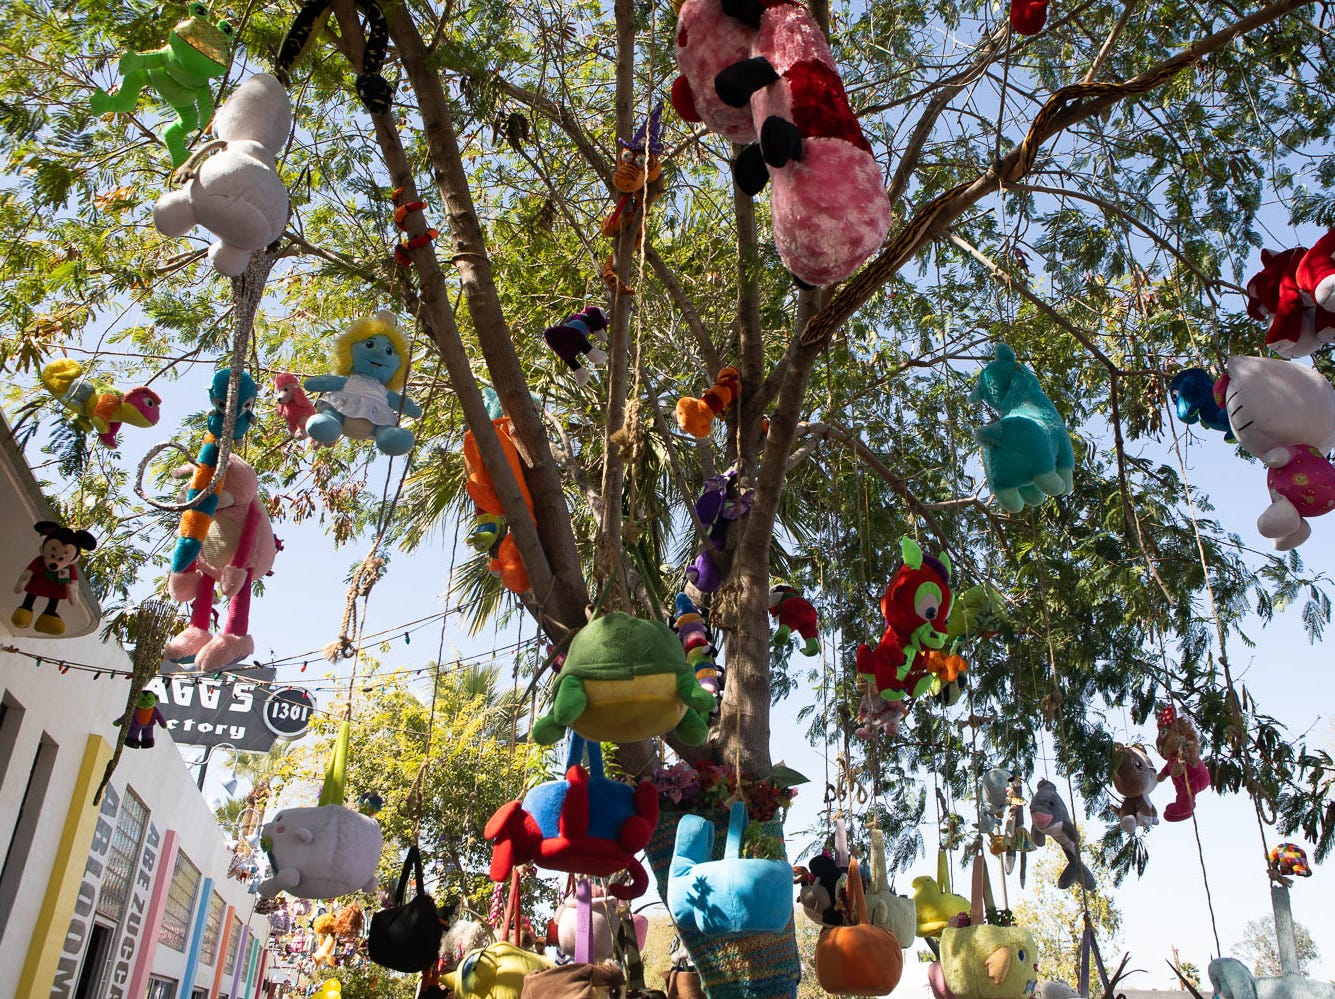 Stuffed animals hand from trees on March 16, 2019, in Phoenix during Art Detour.